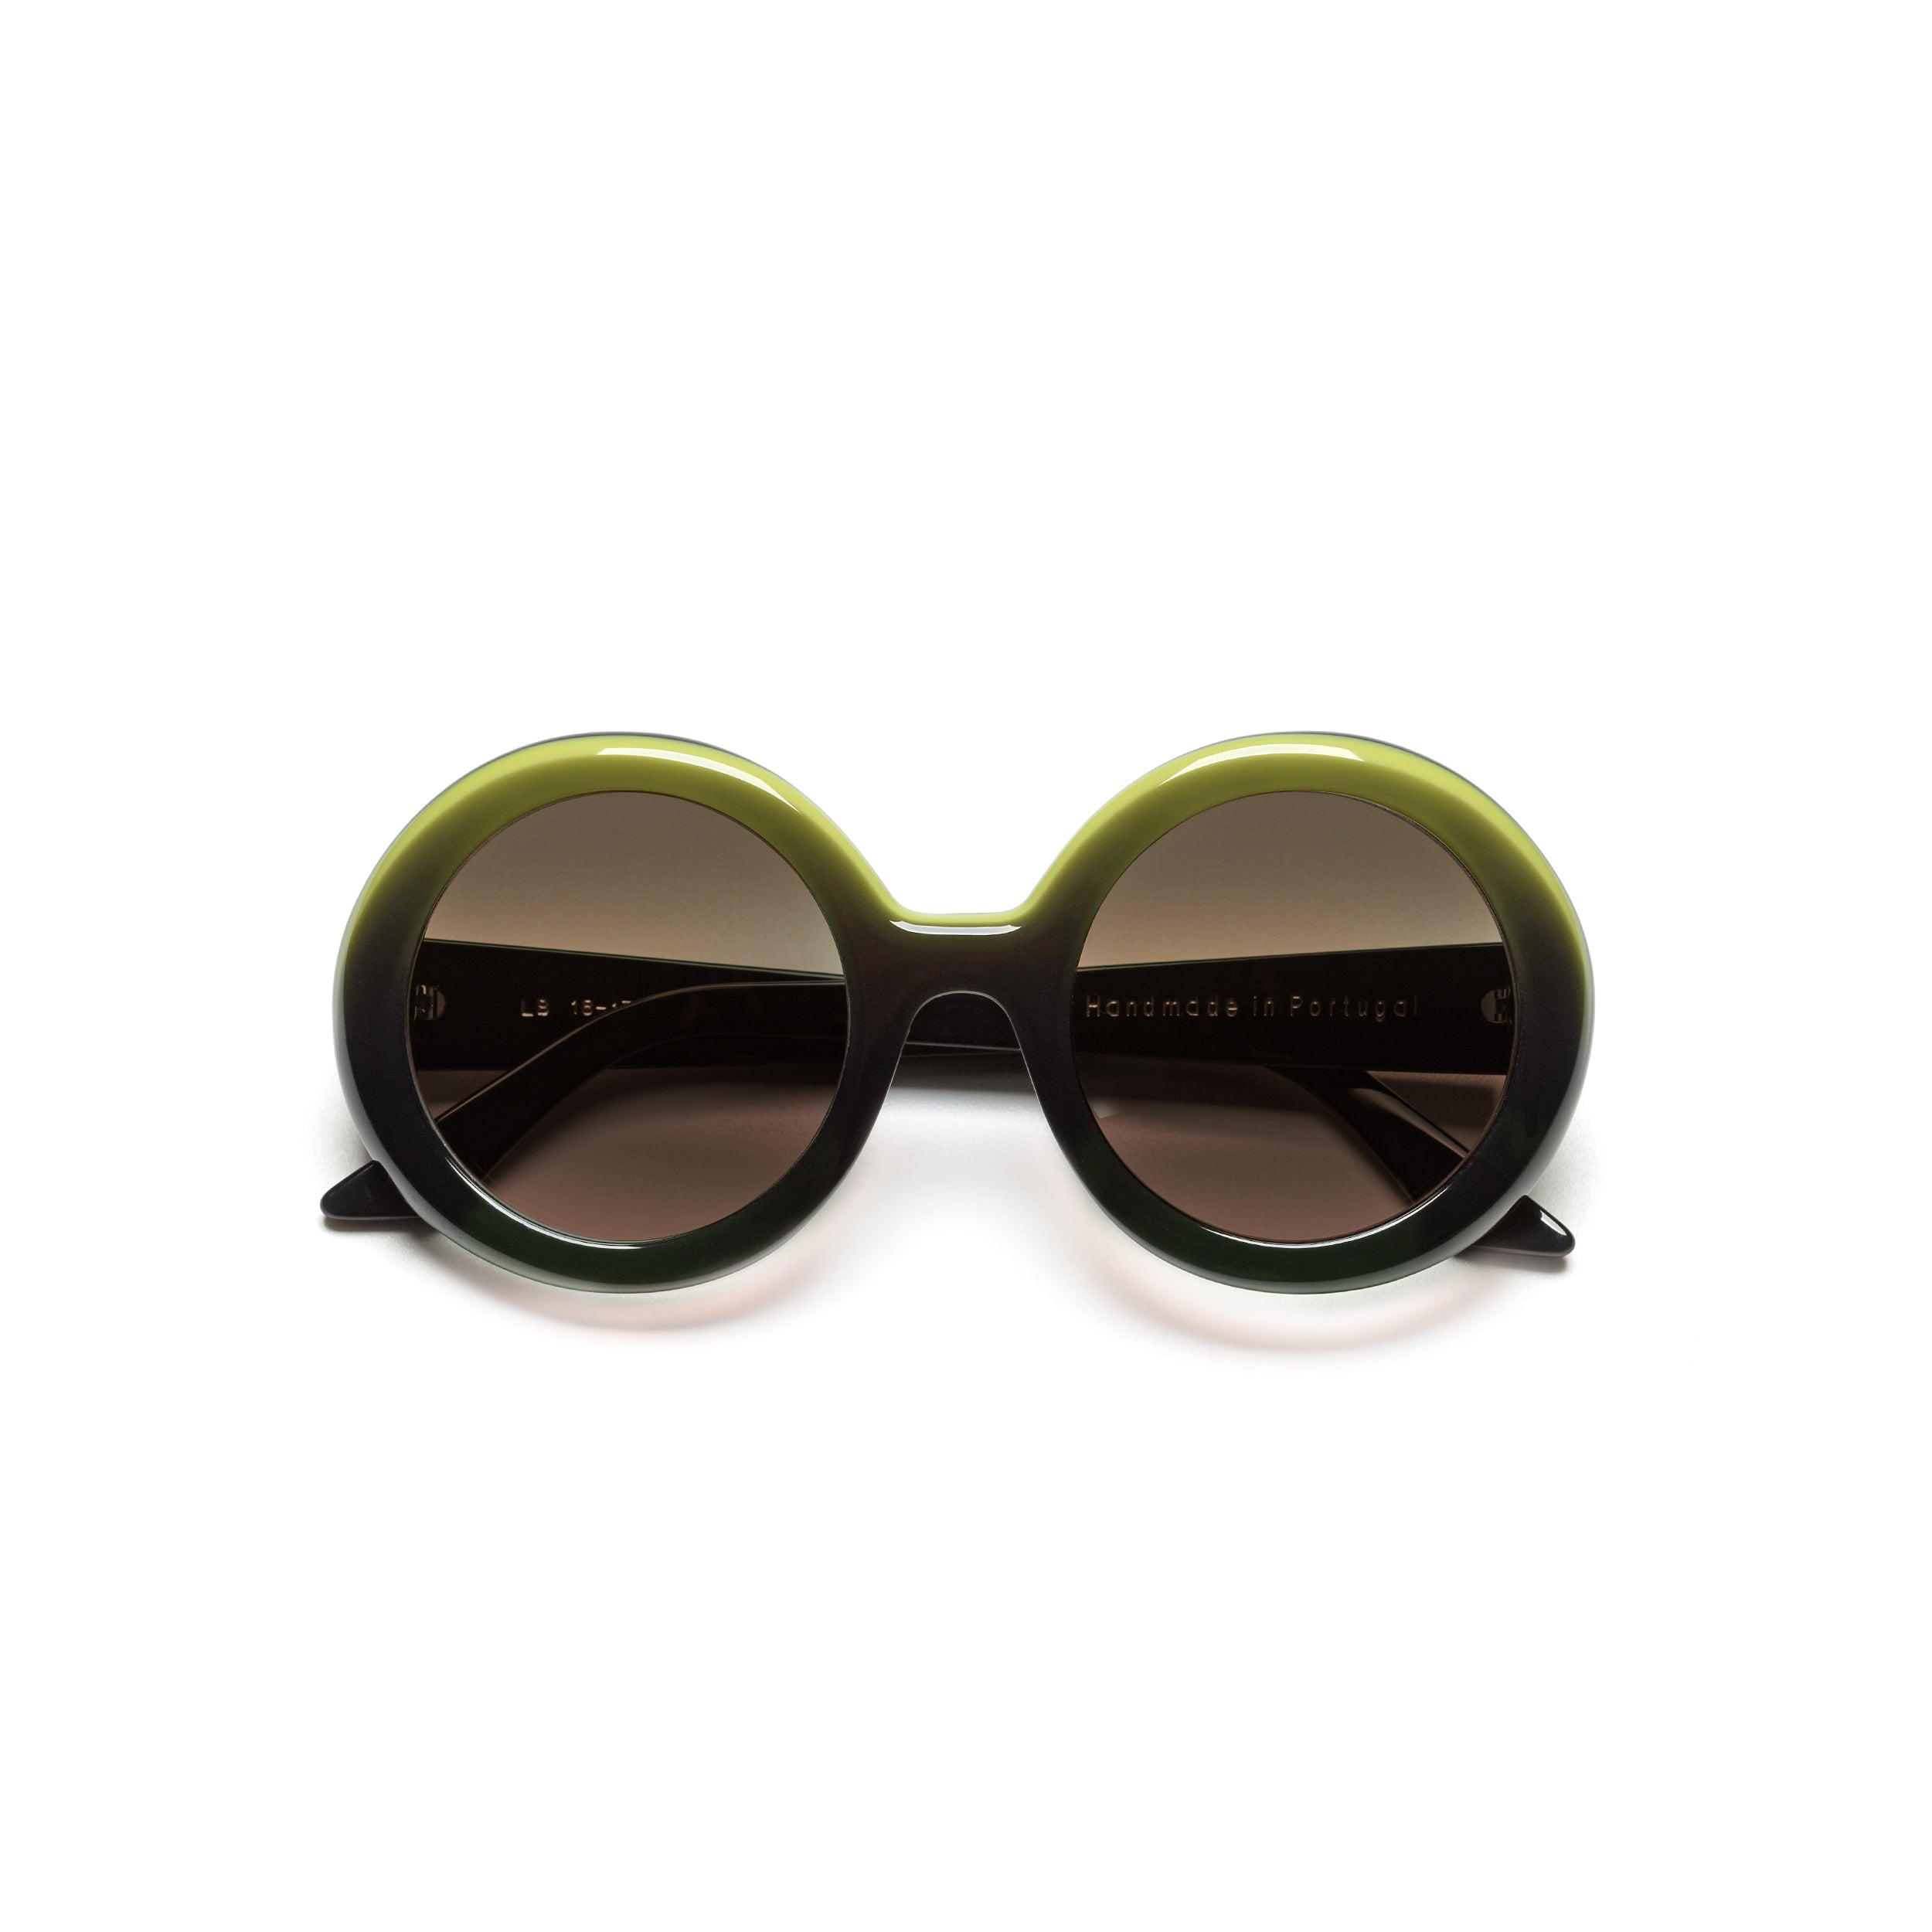 Sunglasses 18-17 C41